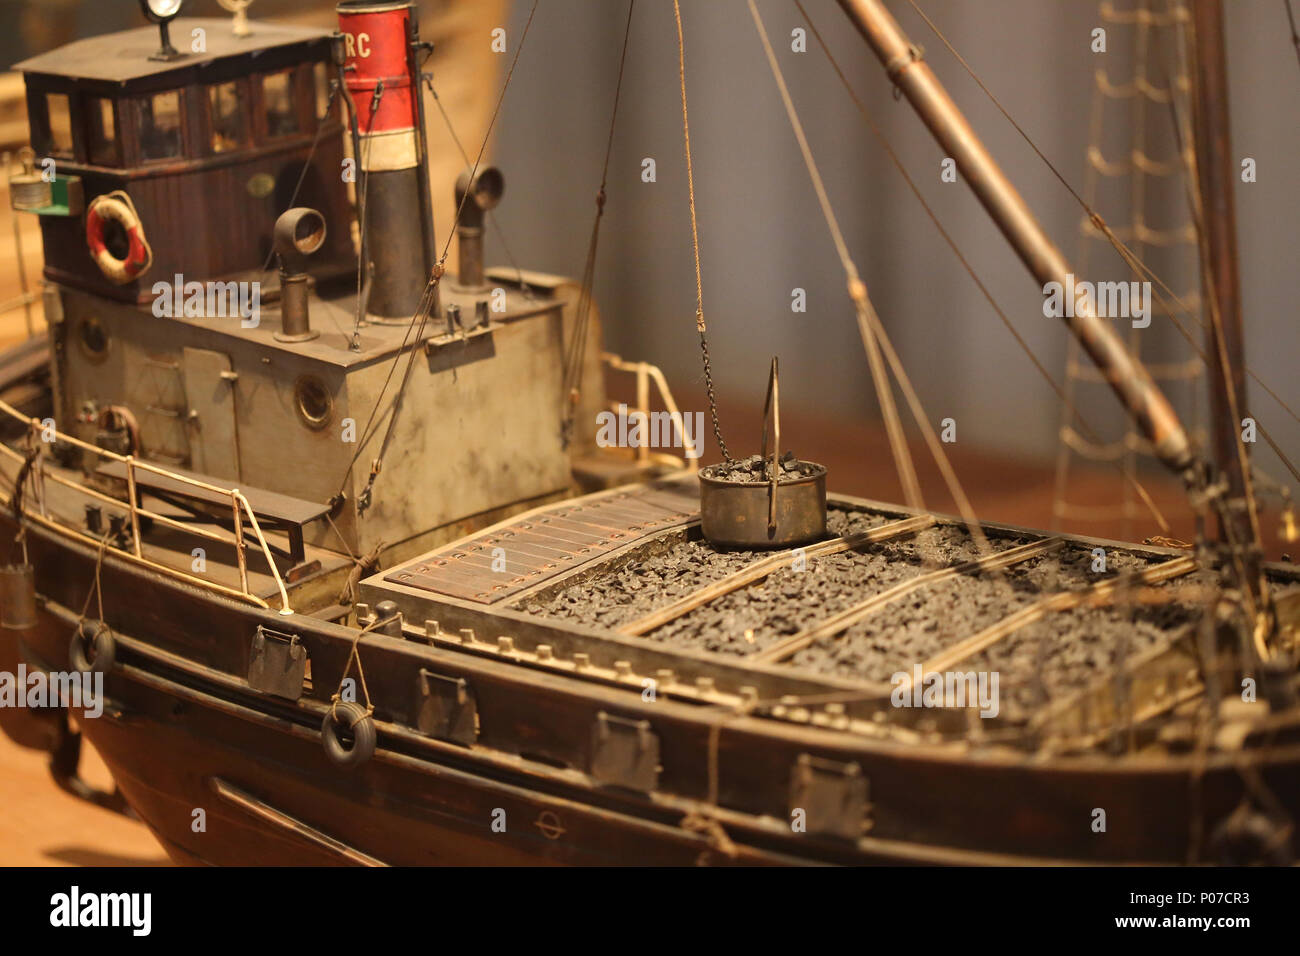 Model of Cap Roig. Small ship of Tansporting coal. Scale: 1:30. Maritime Museum of Barcelona, Catalonia, Spain. - Stock Image